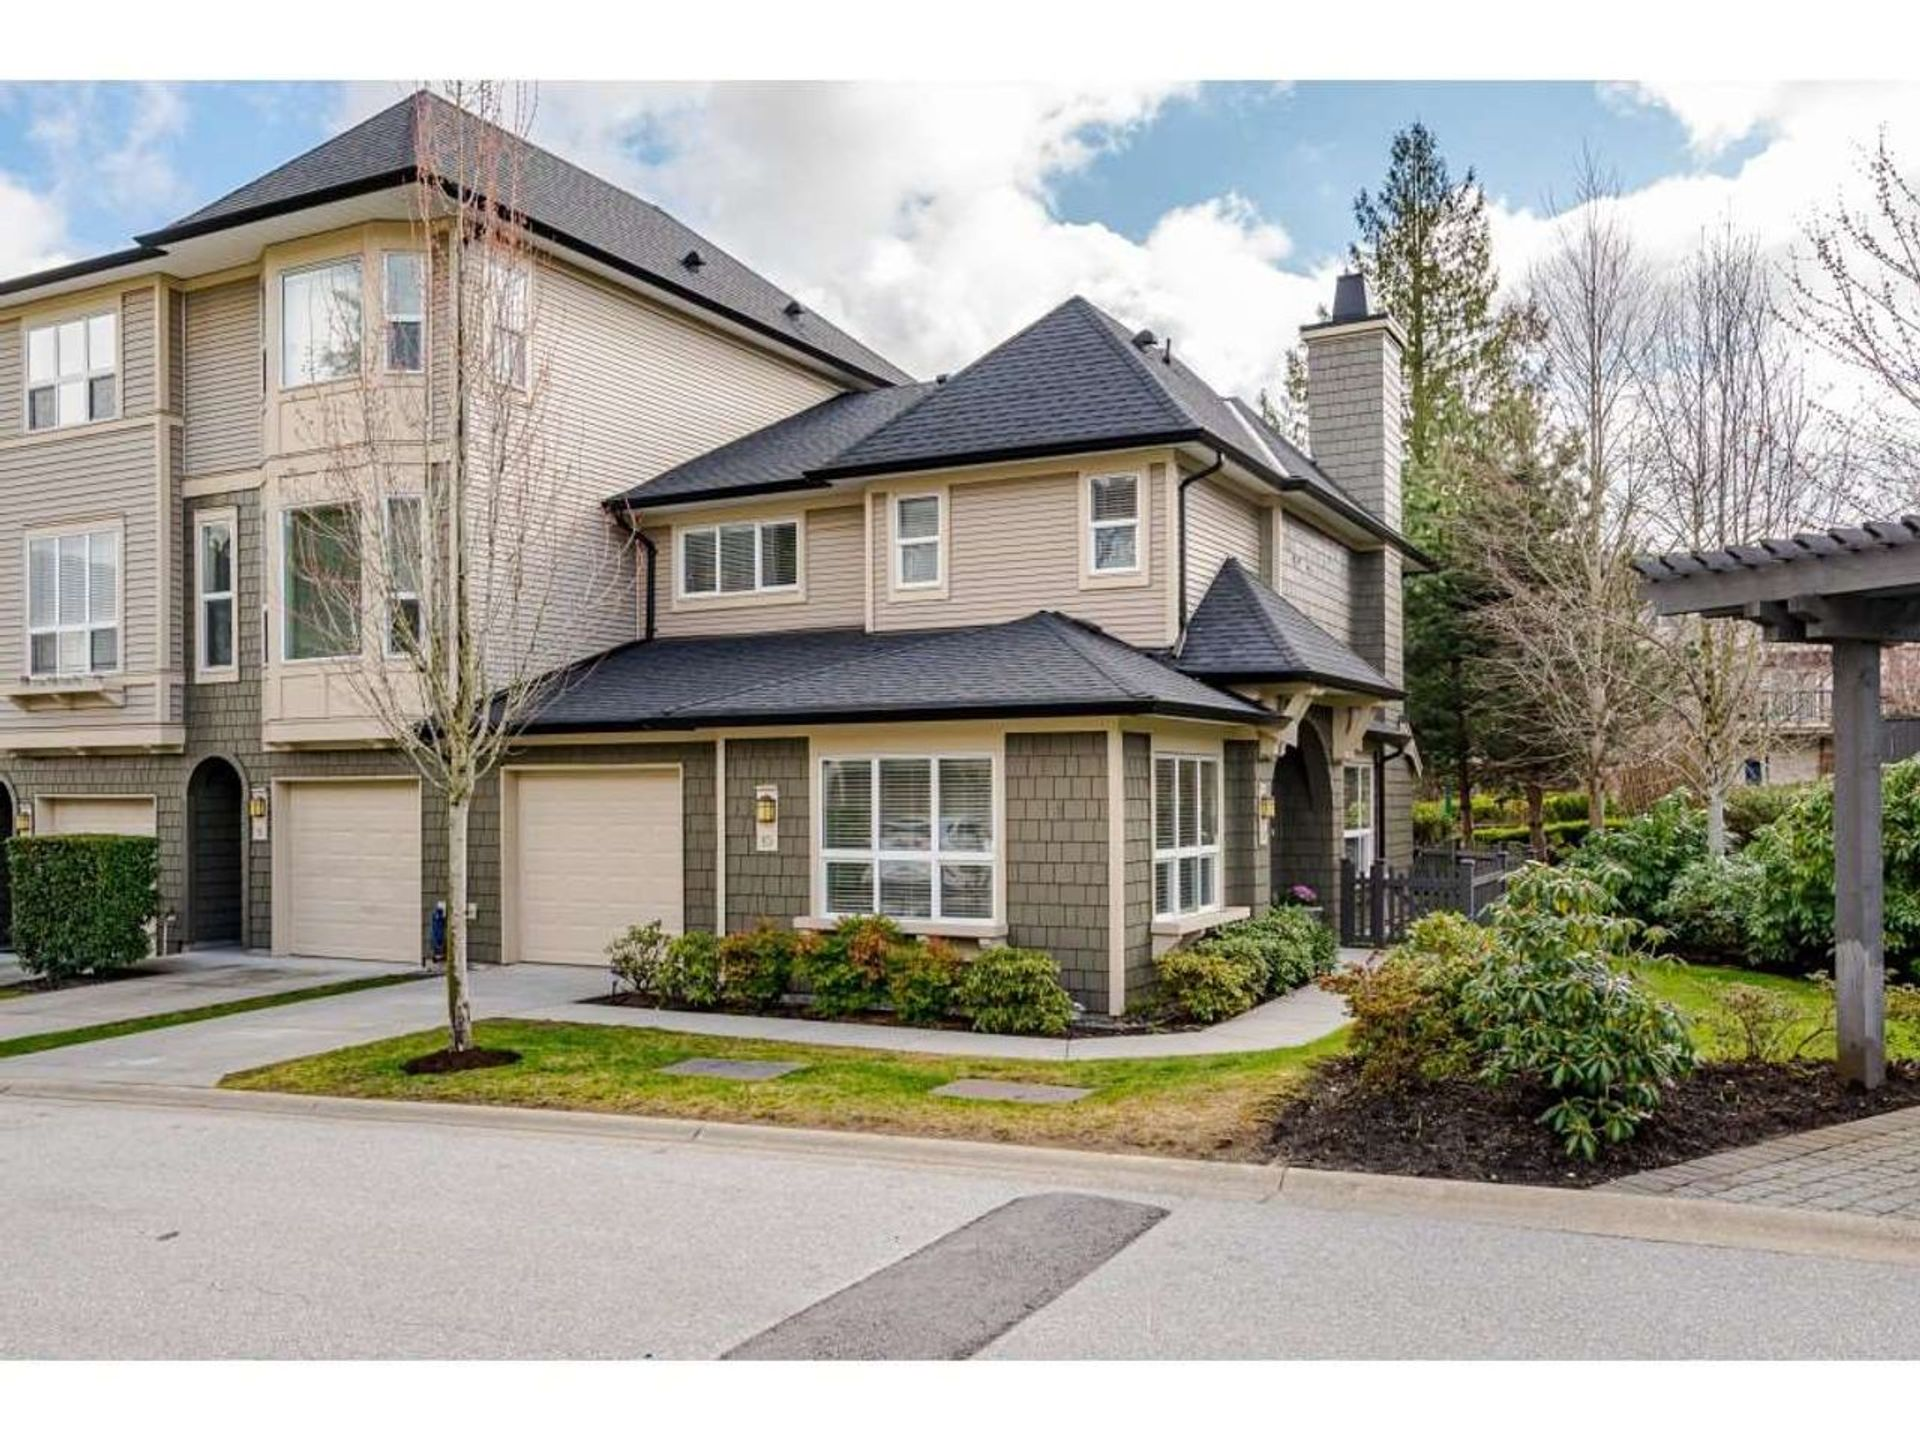 7938-210-street-willoughby-heights-langley-02 at 10 - 7938 209 Street, Willoughby Heights, Langley